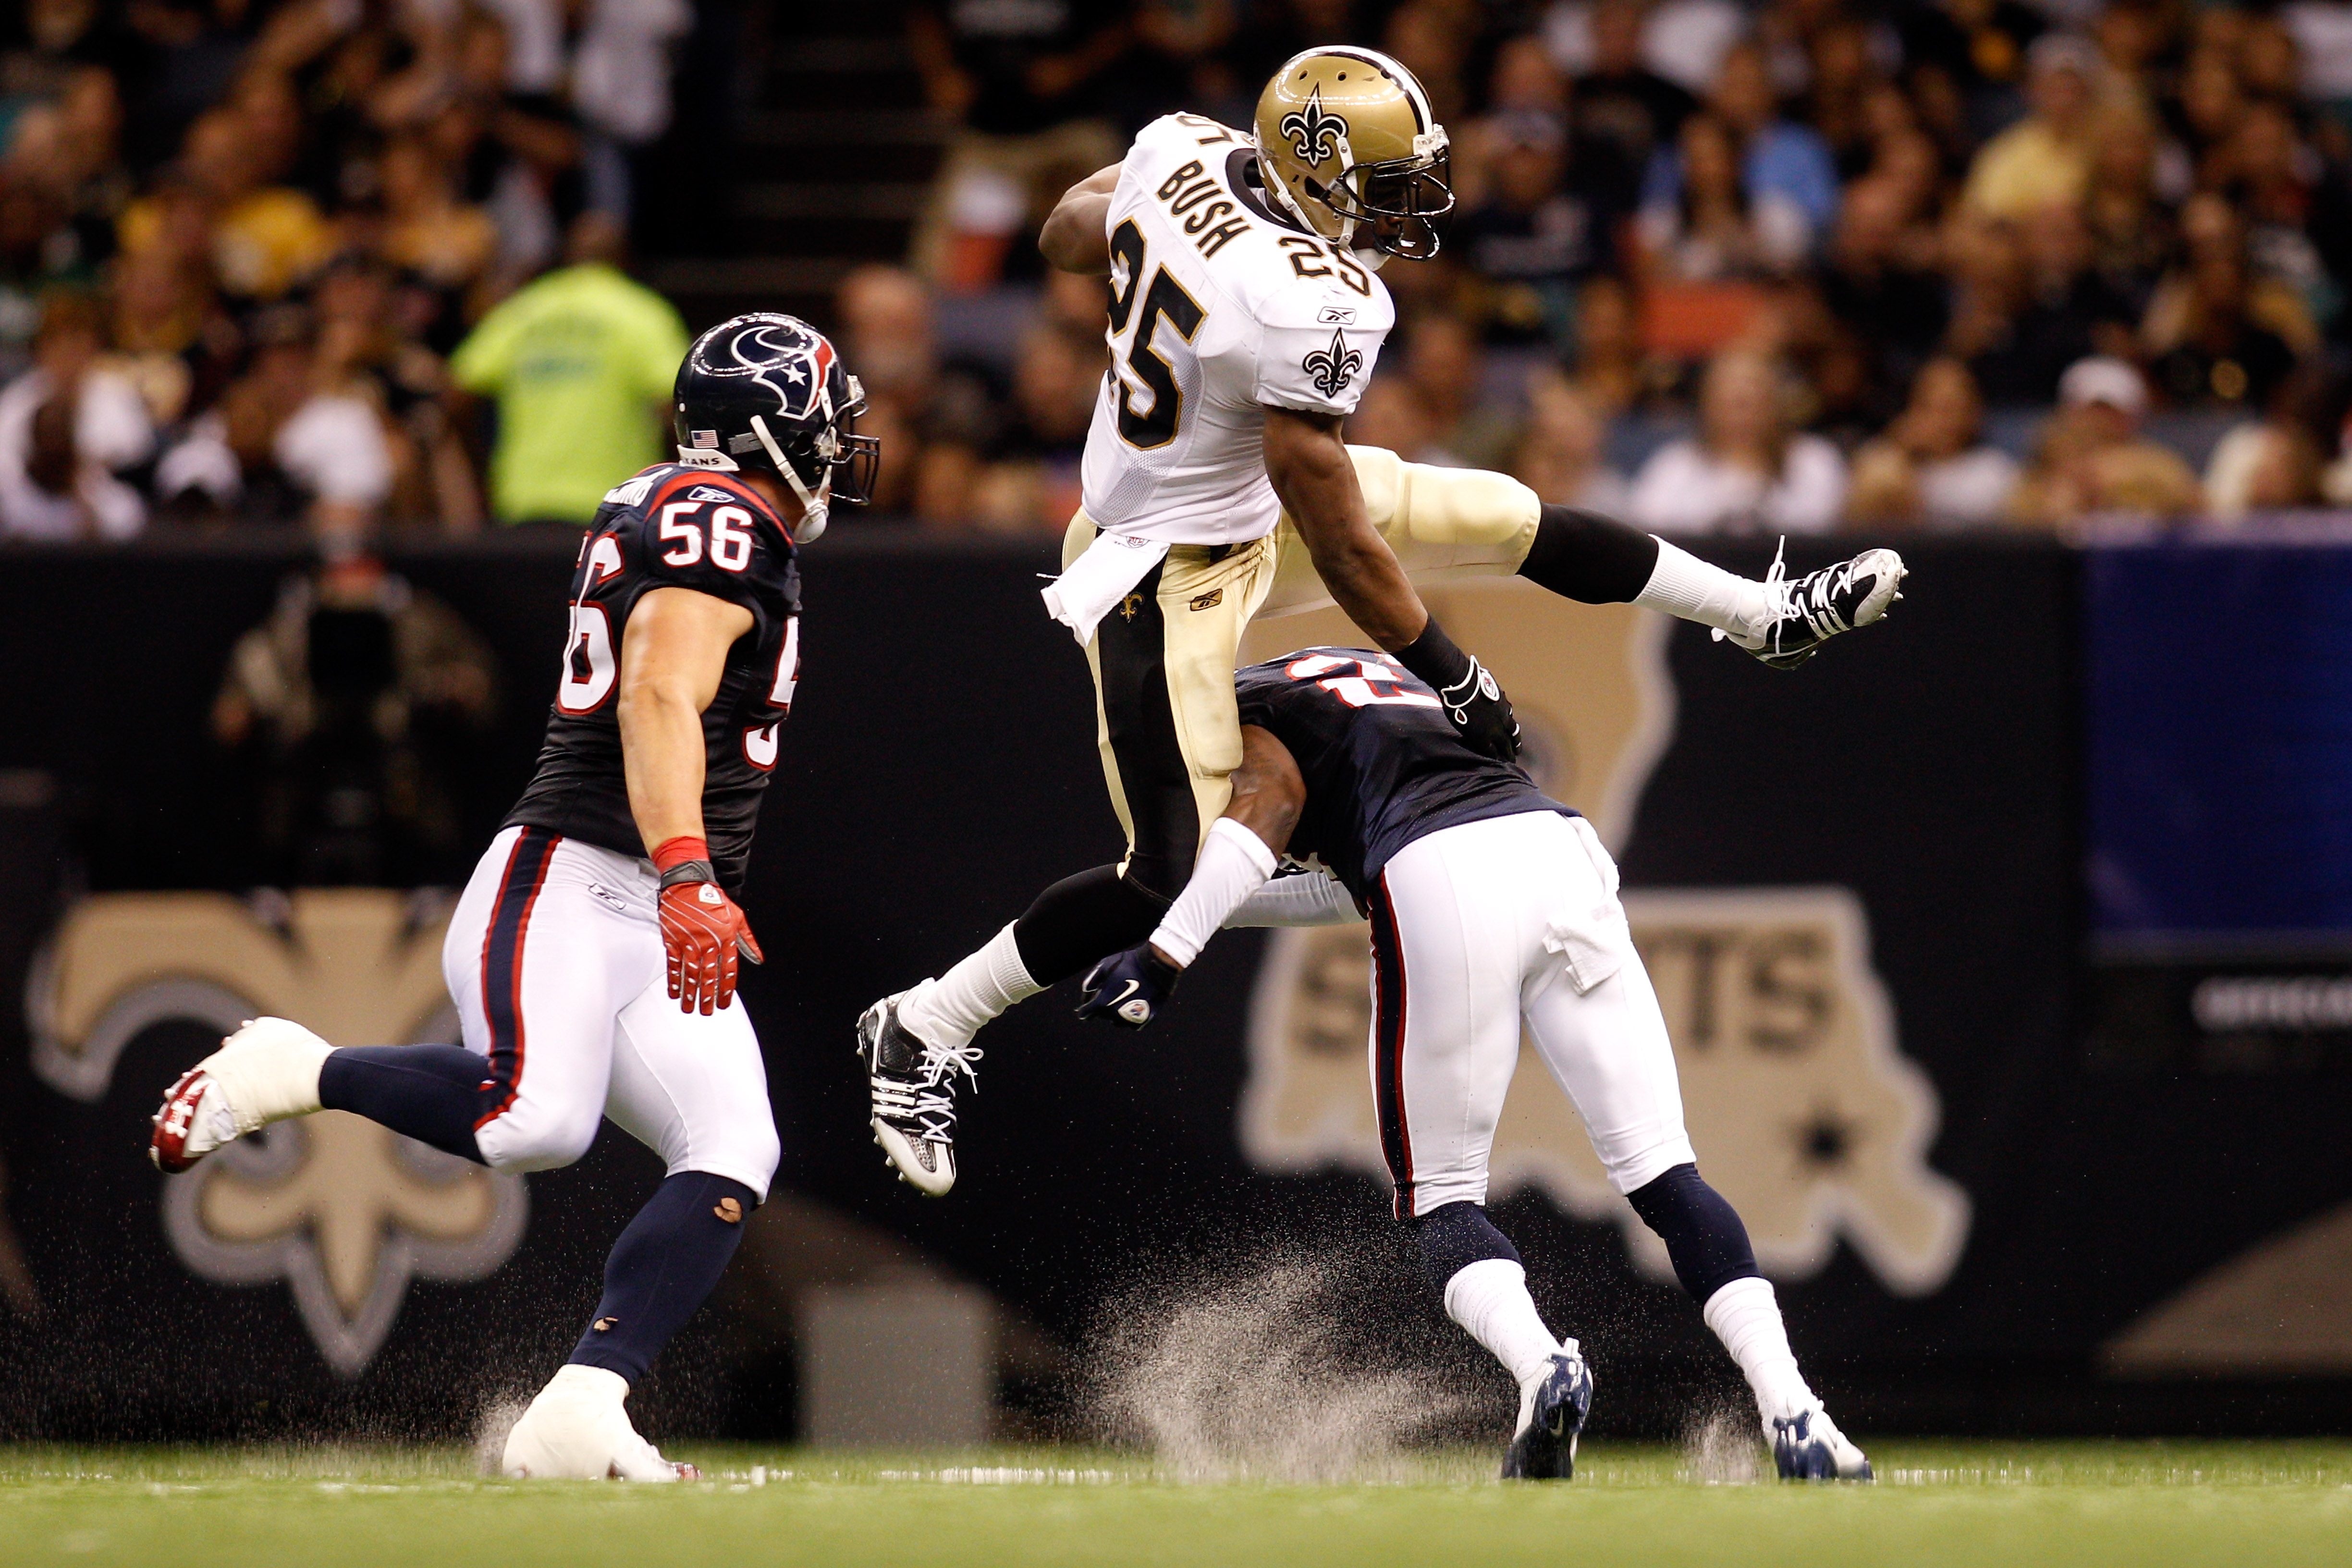 NEW ORLEANS - AUGUST 21:  Reggie Bush #25 of the New Orleans Saints jumps over Brice McCain #21 of the Houston Texans at the Louisiana Superdome on August 21, 2010 in New Orleans, Louisiana.  (Photo by Chris Graythen/Getty Images)